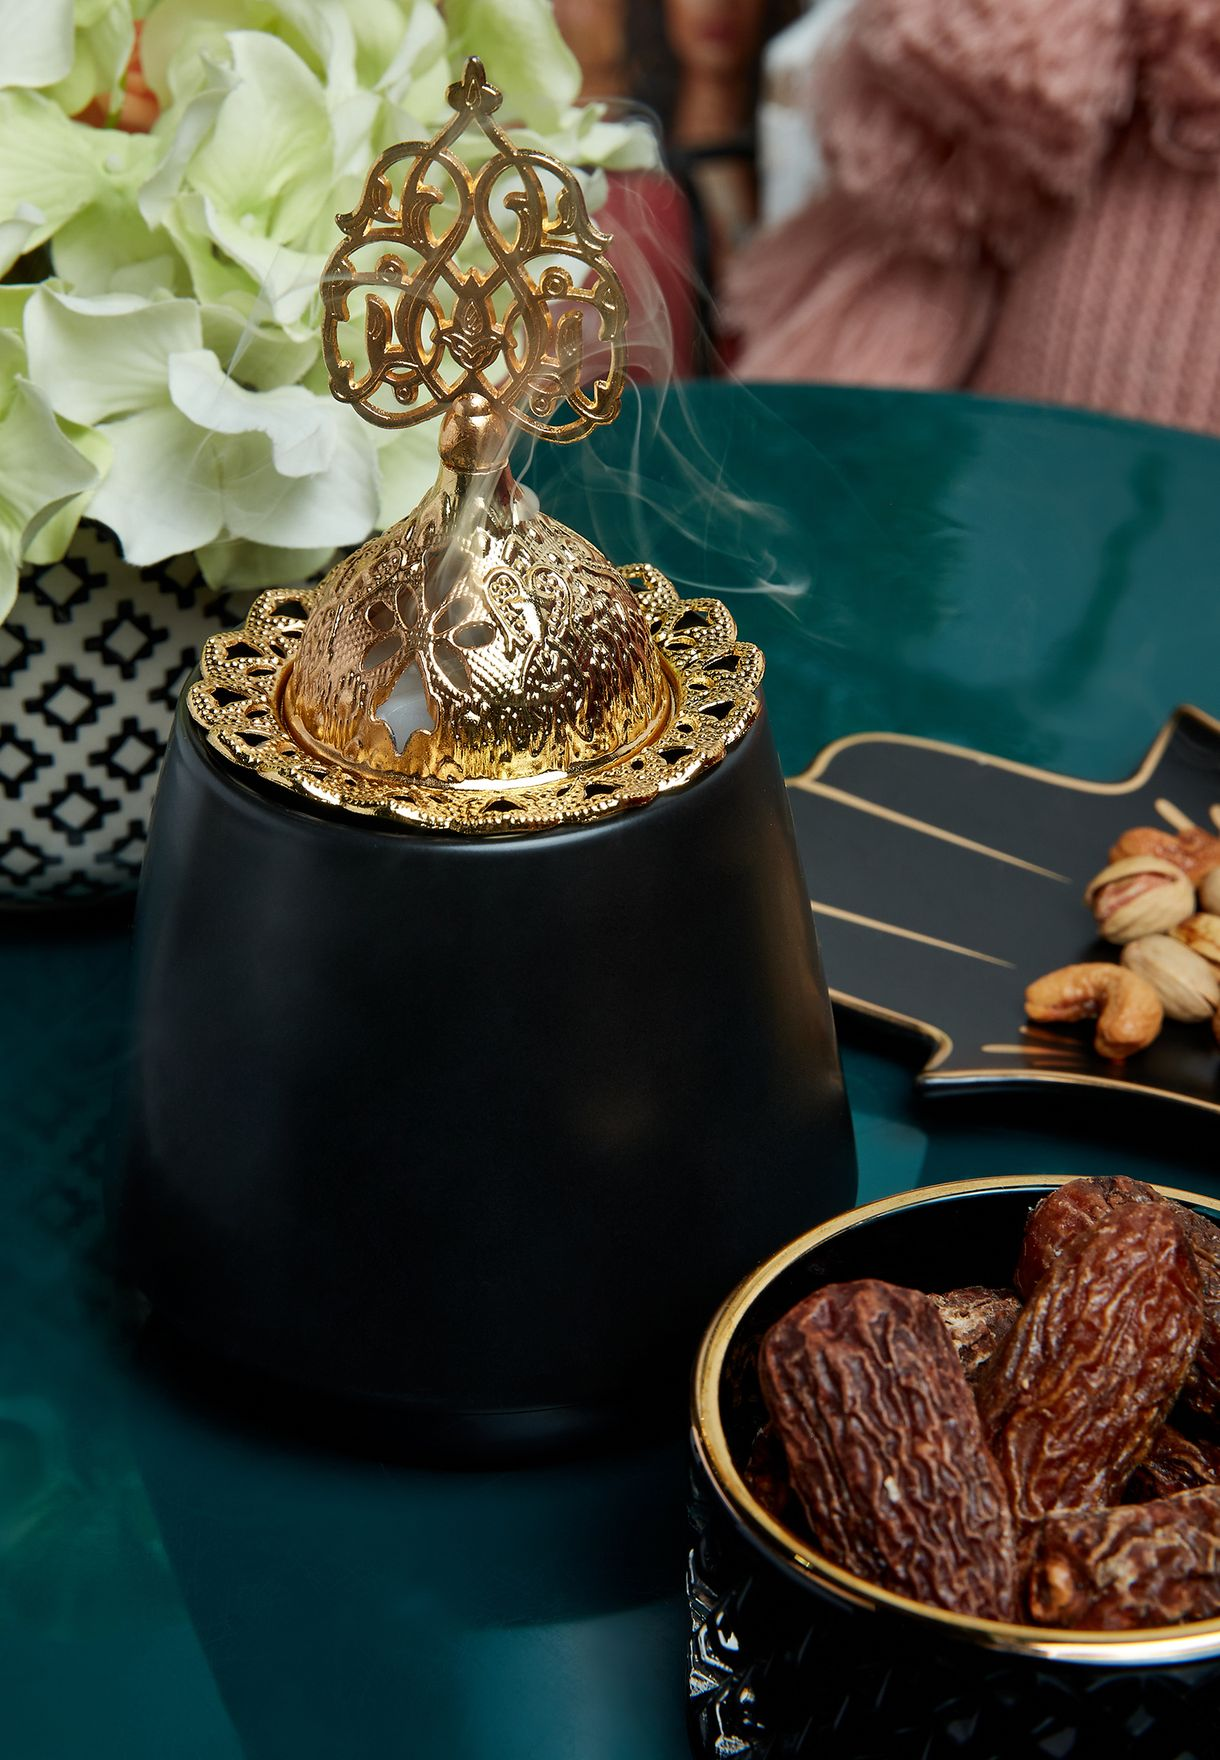 Arabic Incense Burner